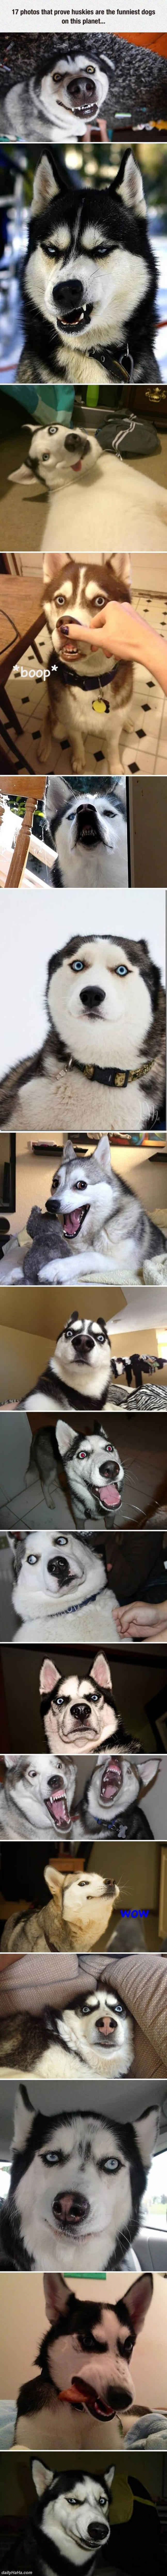 huskies are funny dogs funny picture